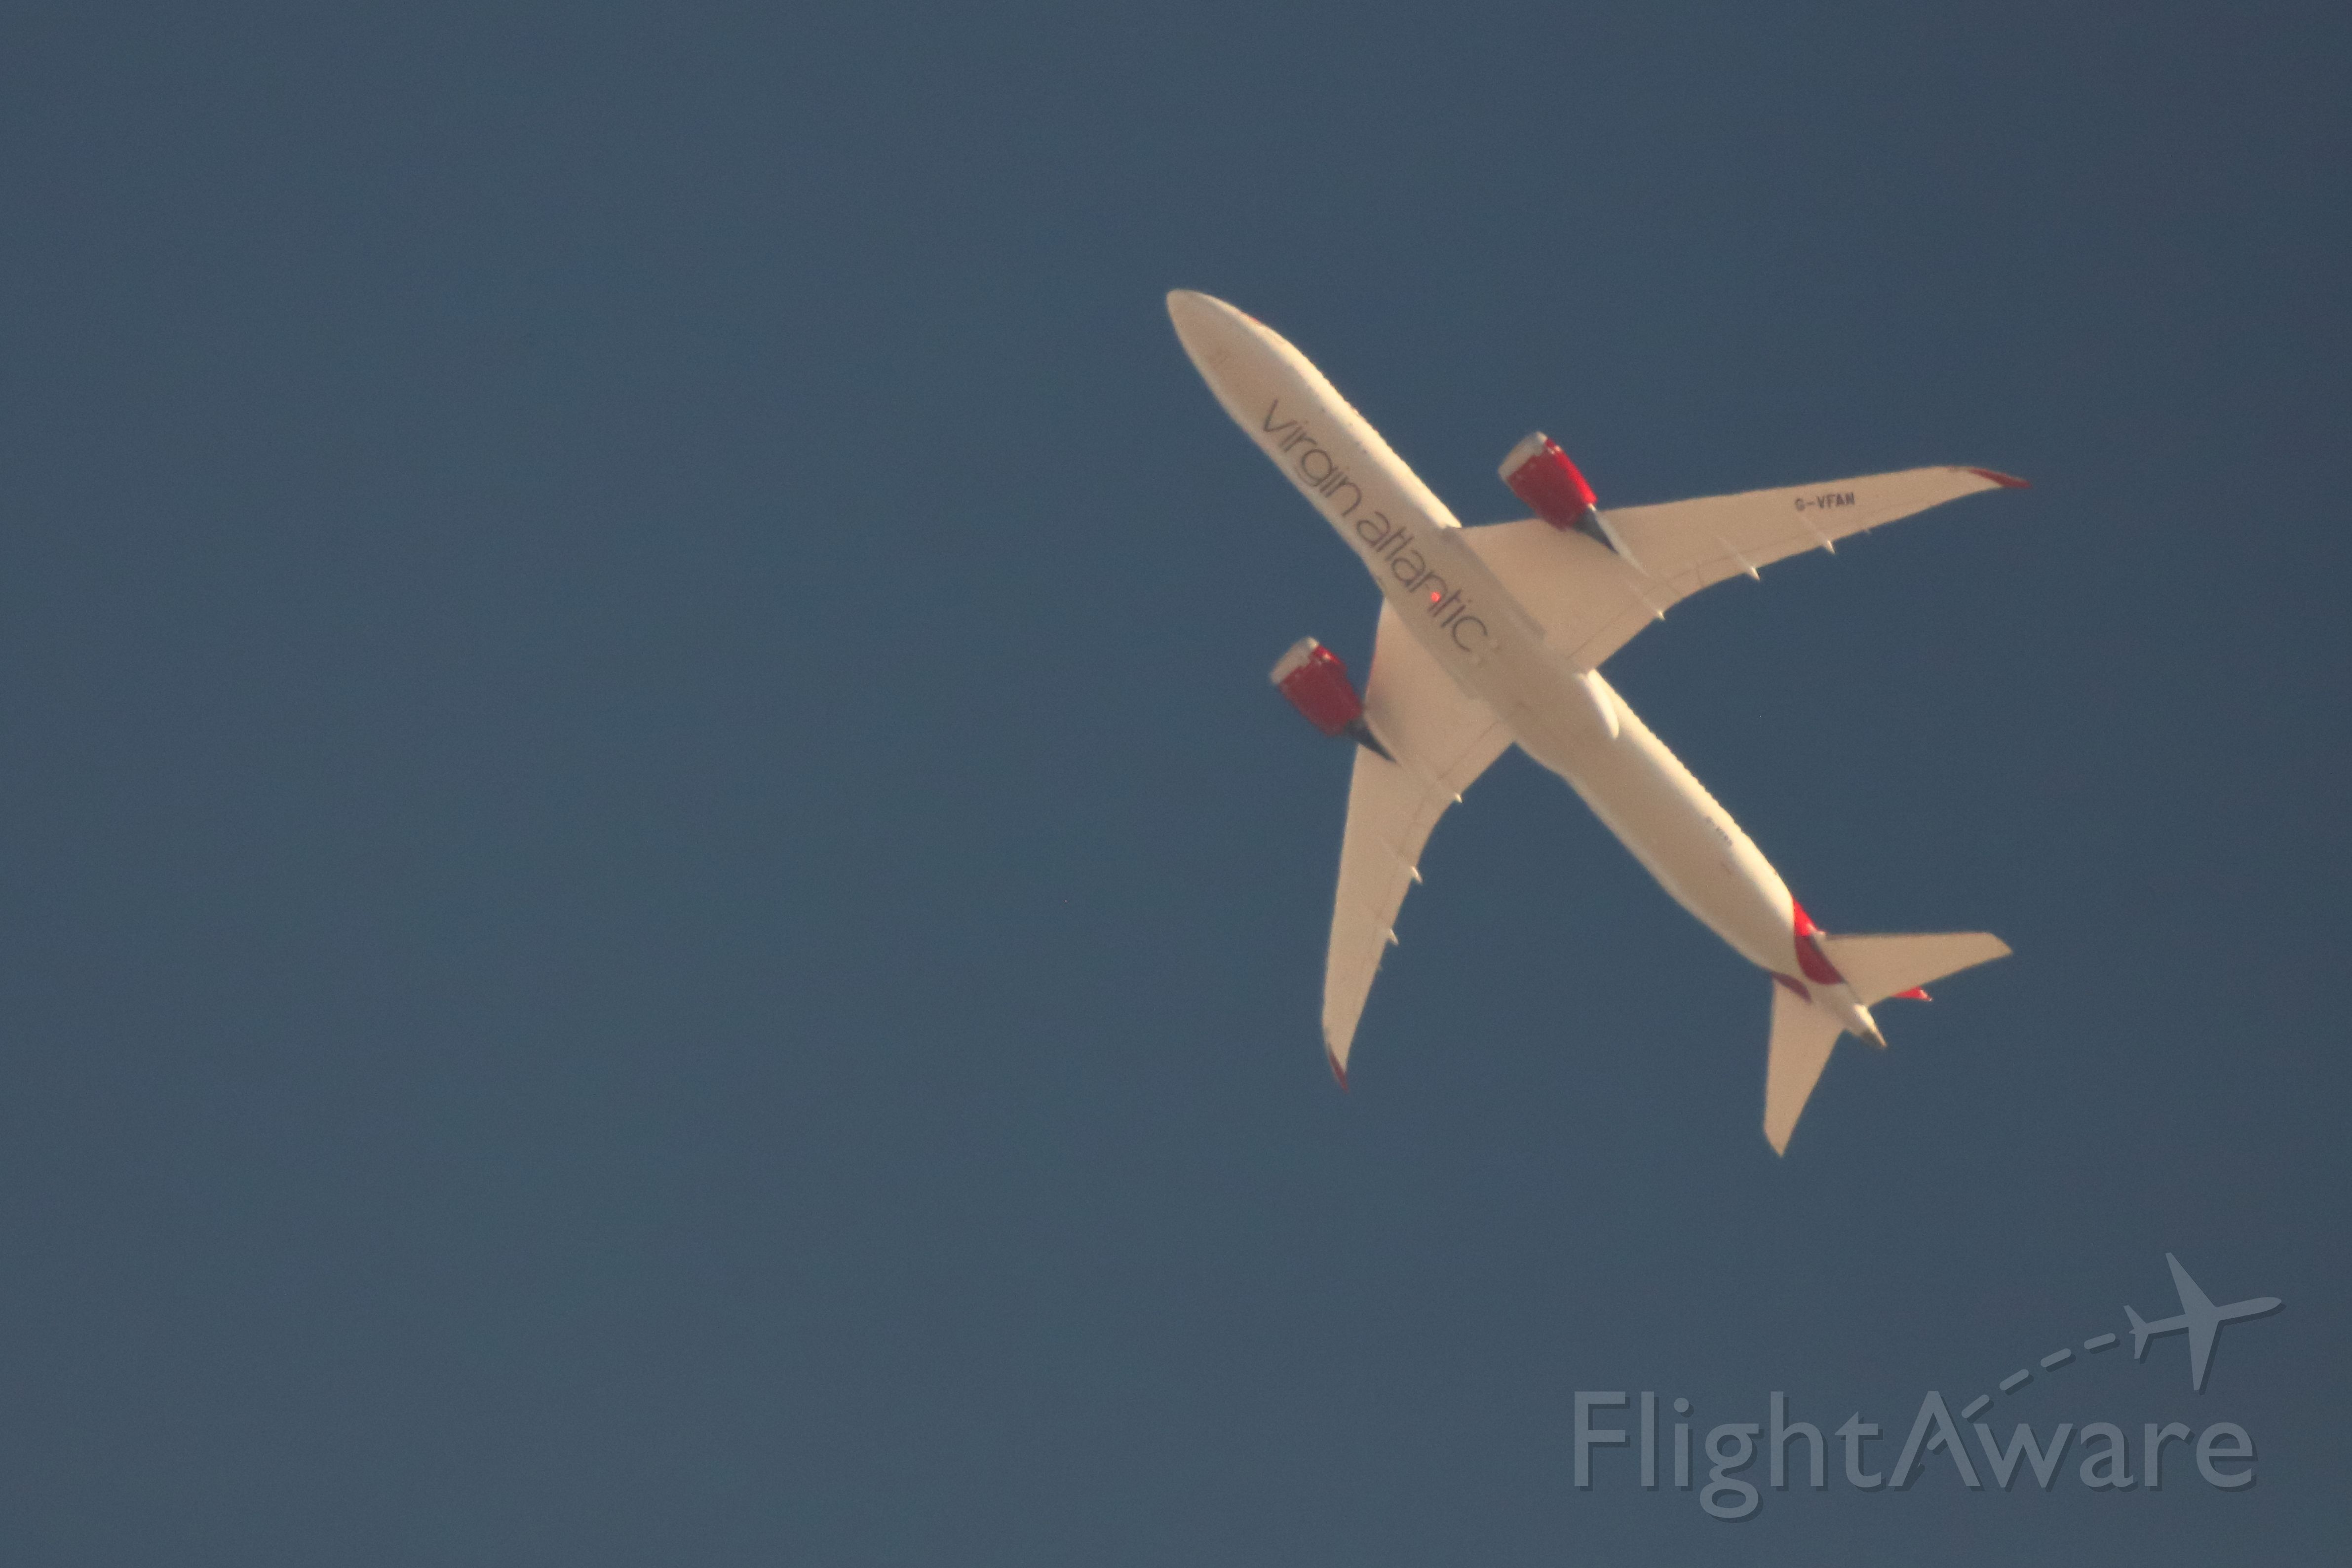 Boeing 787-9 Dreamliner (G-VFAN) - The aircraft passed over Pinon Hills CA at FL220 on it's way from LA to London.  This image was taken with a 600mm lens and 2x TC for a combined 1200mm of focal length.